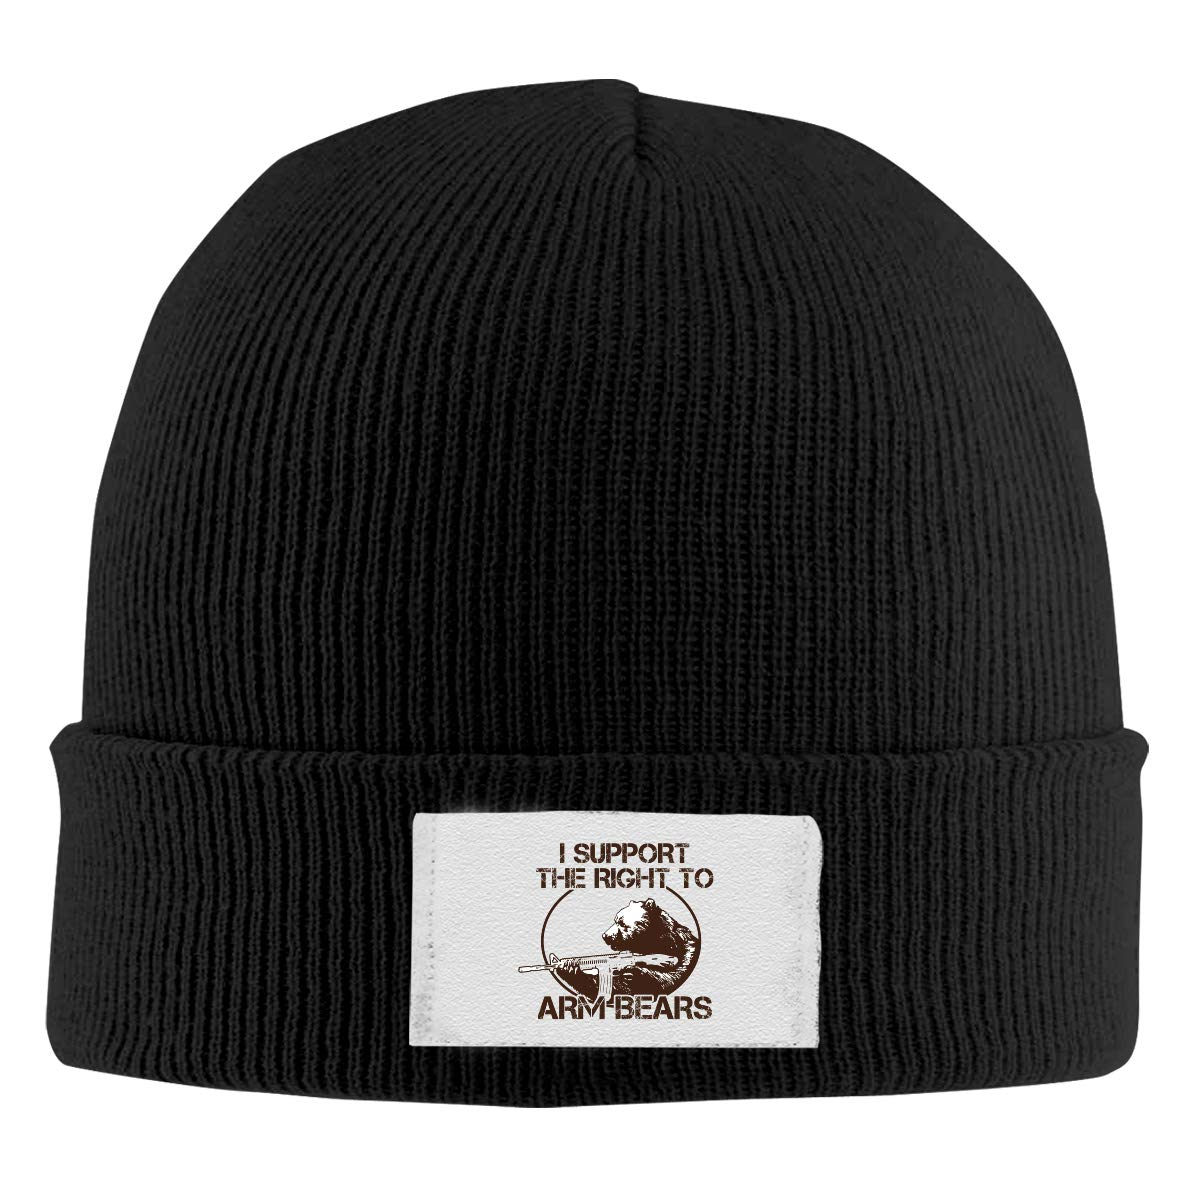 I Support The Right to Arm Bears Knitted Hat Beanies Cap Funny Unisex Winter Black